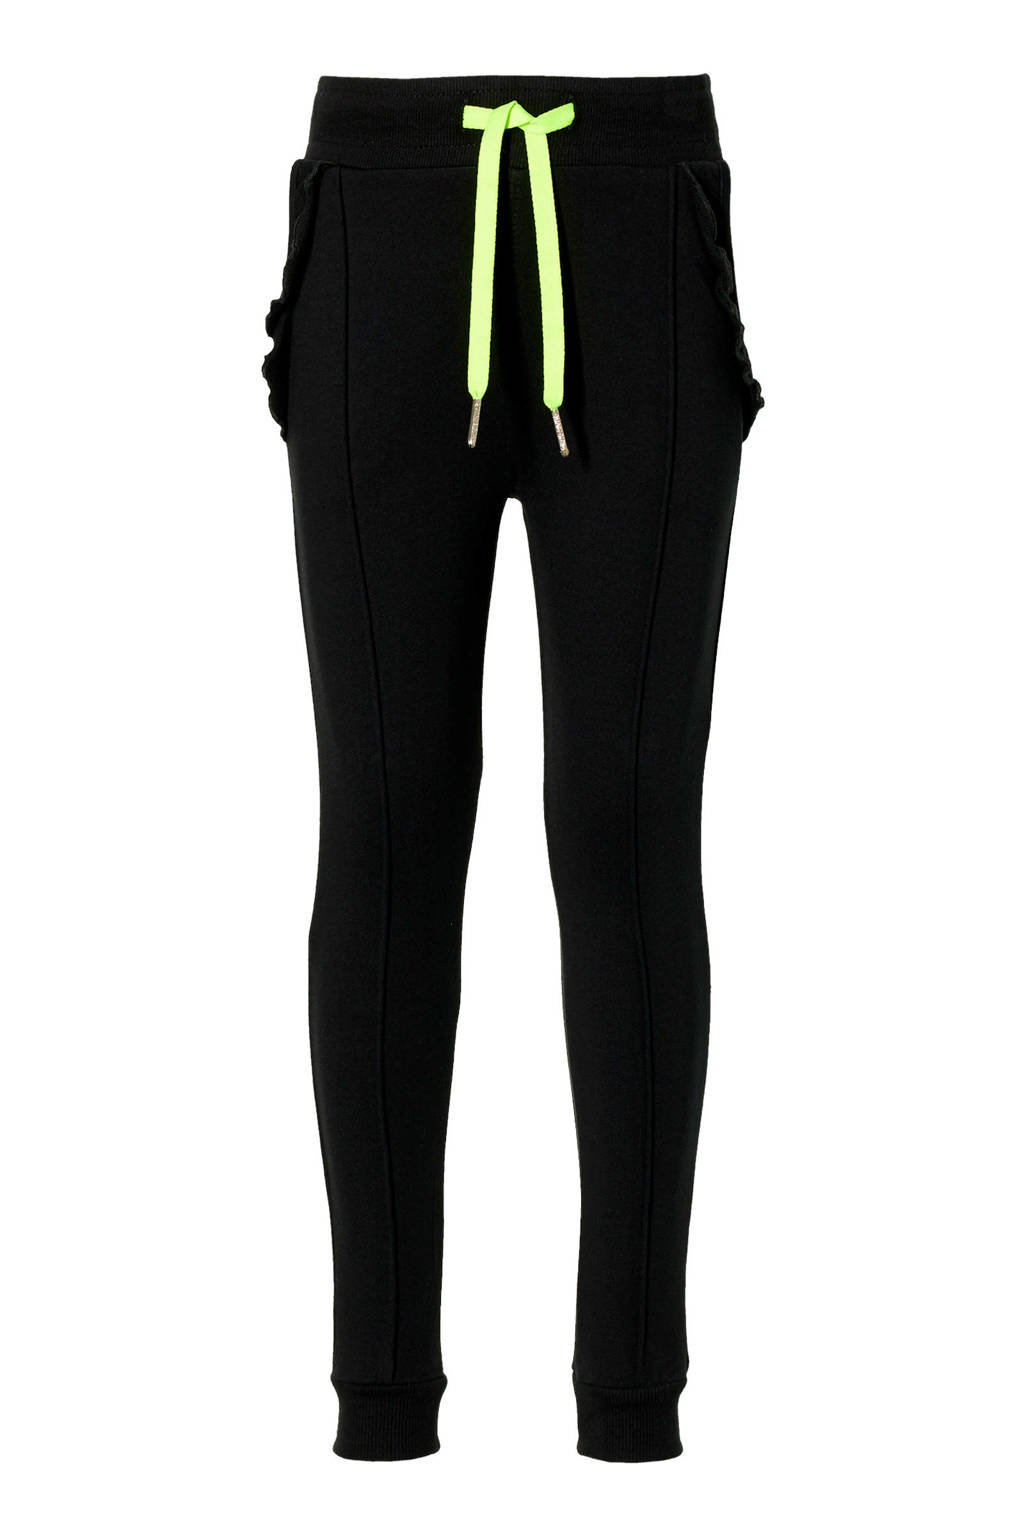 Quapi Girls regular fit broek Djoelle zwart, Zwart